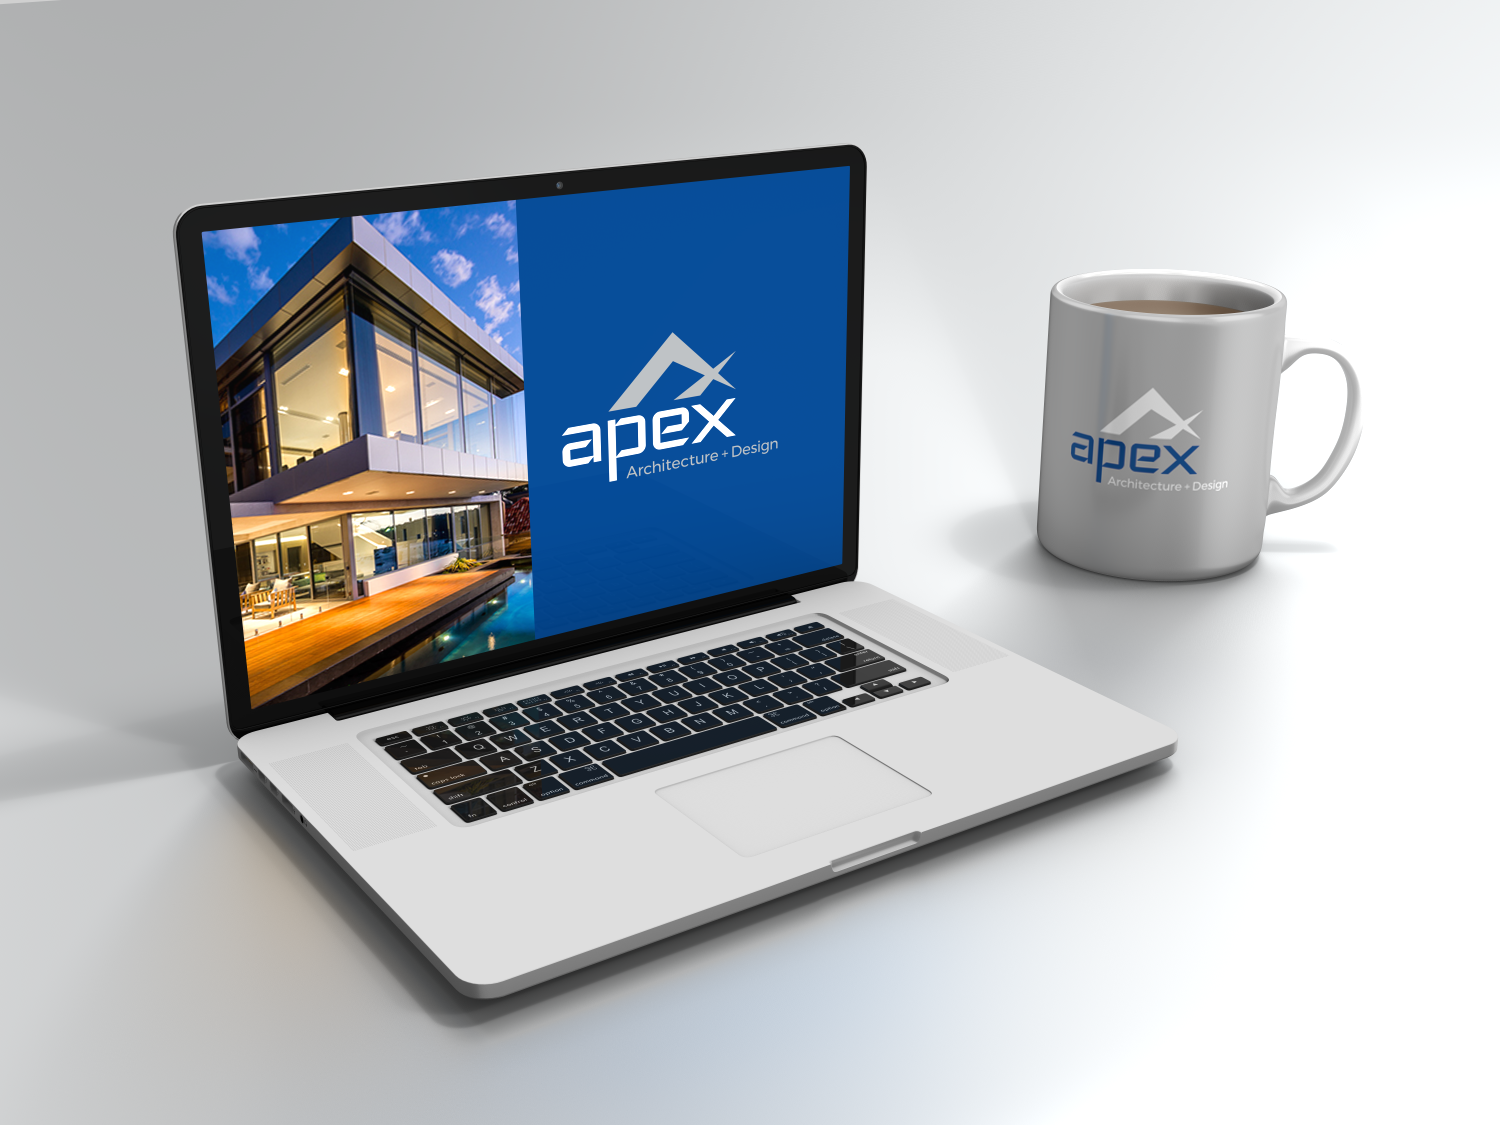 Apex Architecture and Design logo mockup on Macbook with branded Apex mug